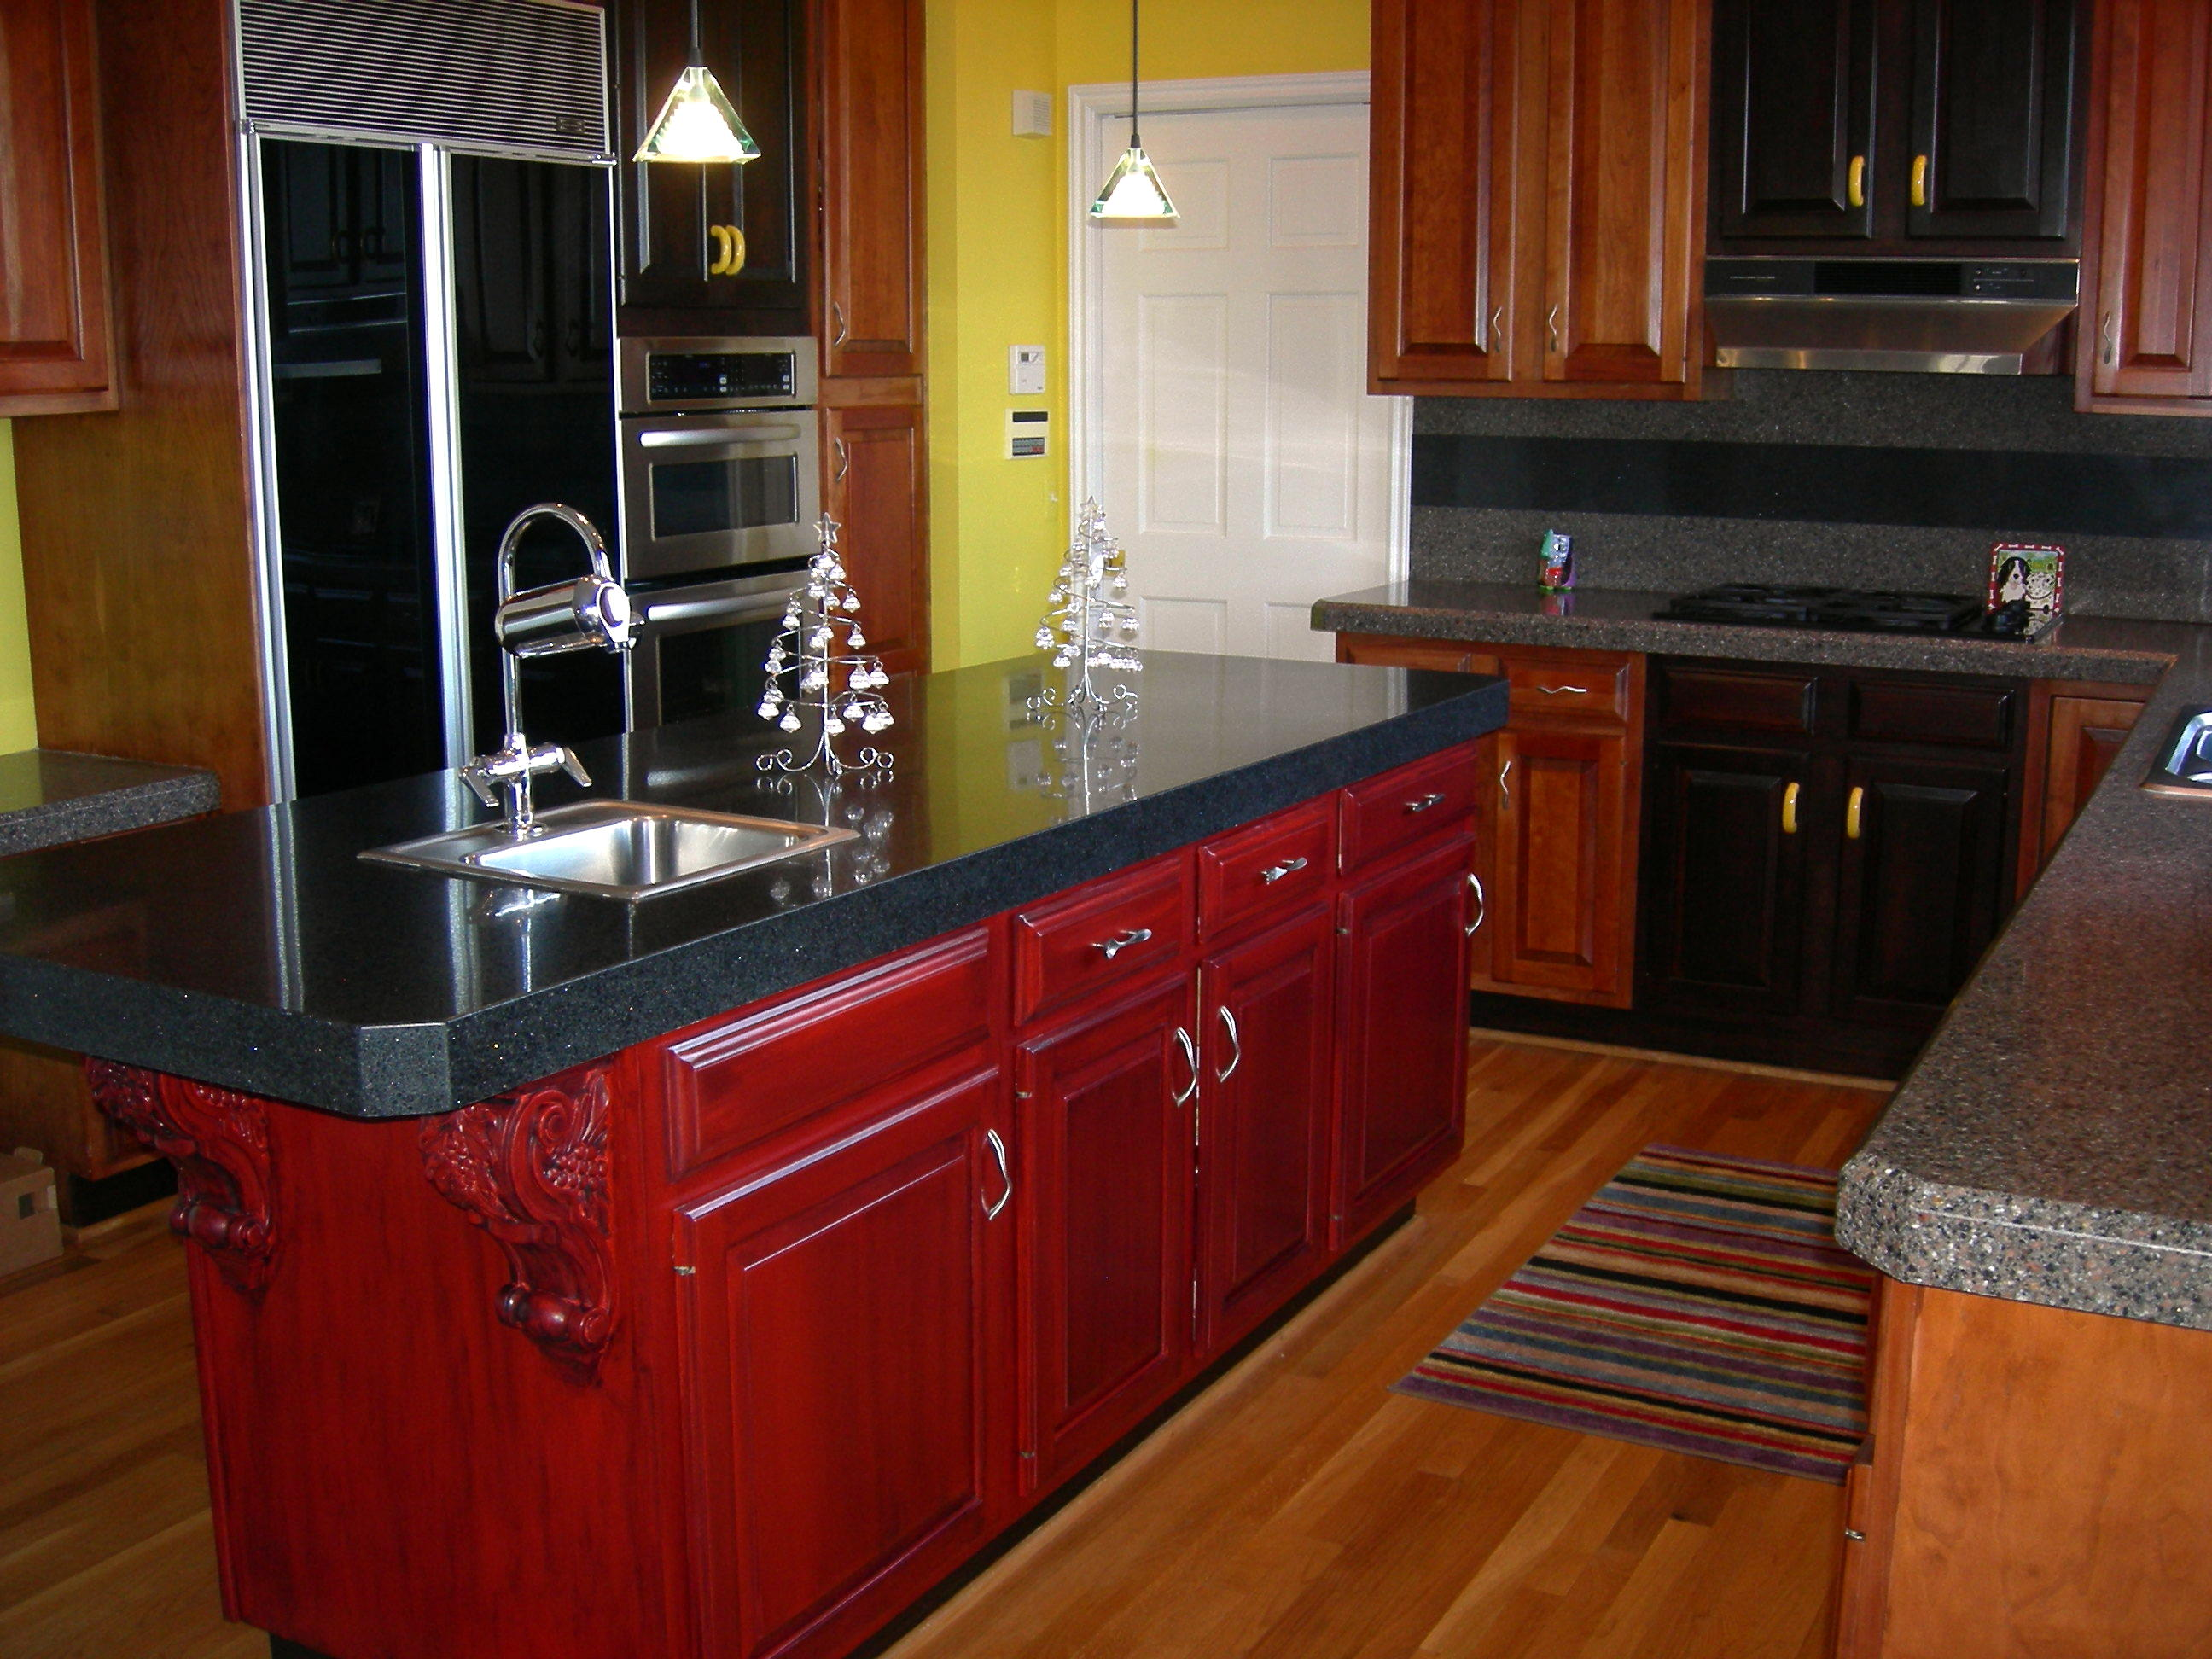 Refinishing cabinets a simple do it yourself task for Staining kitchen cabinets